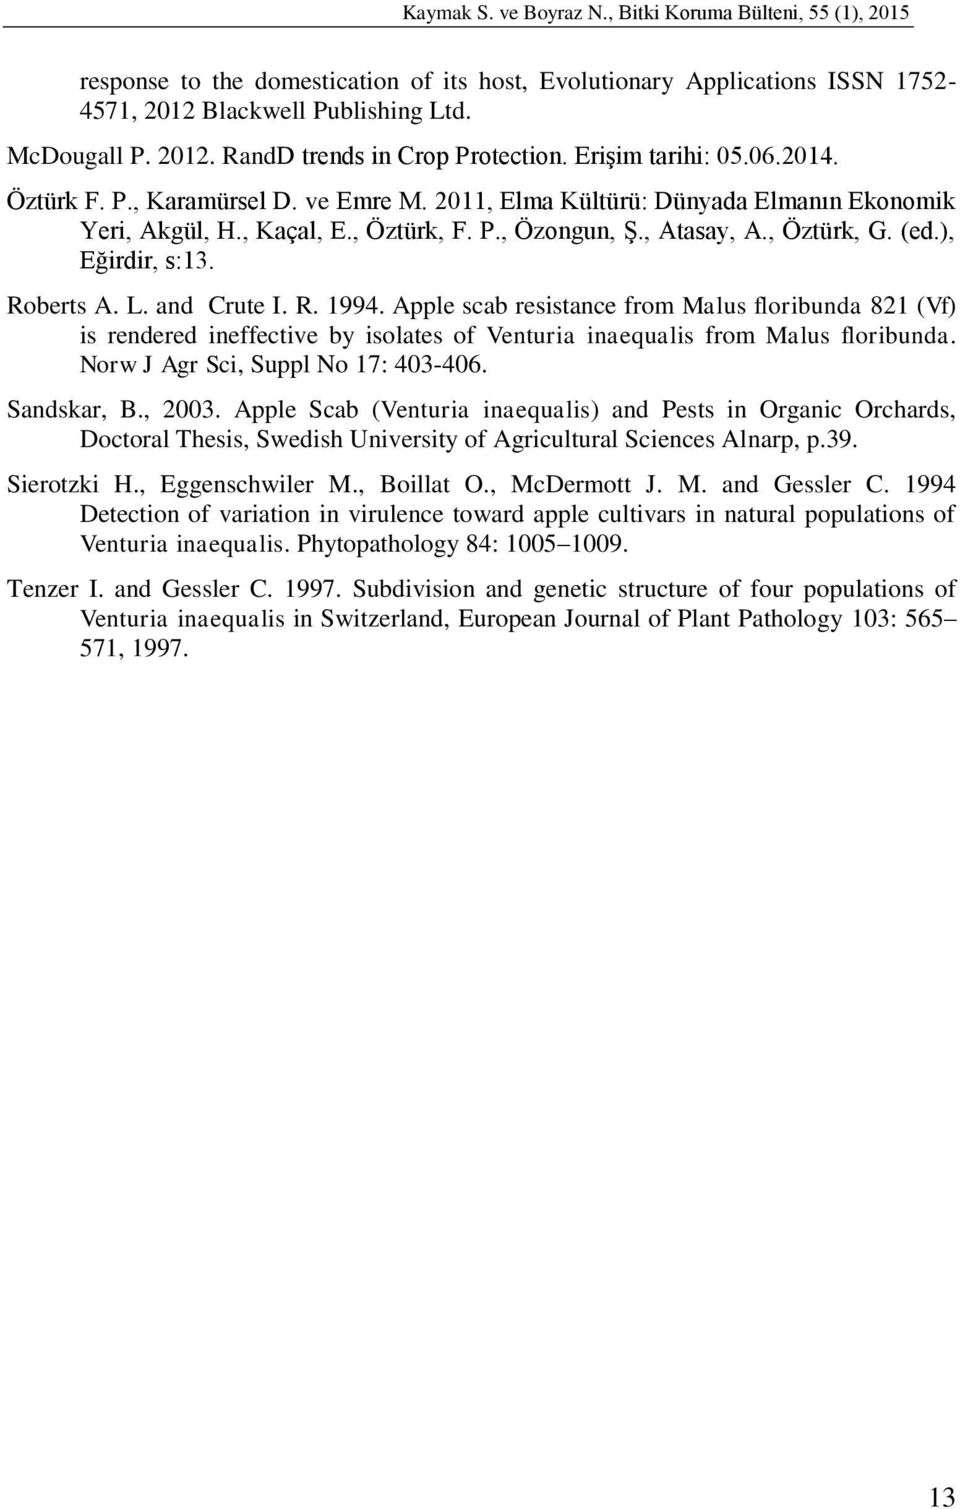 ), Eğirdir, s:13. Roberts A. L. and Crute I. R. 1994. Apple scab resistance from Malus floribunda 821 (Vf) is rendered ineffective by isolates of Venturia inaequalis from Malus floribunda.